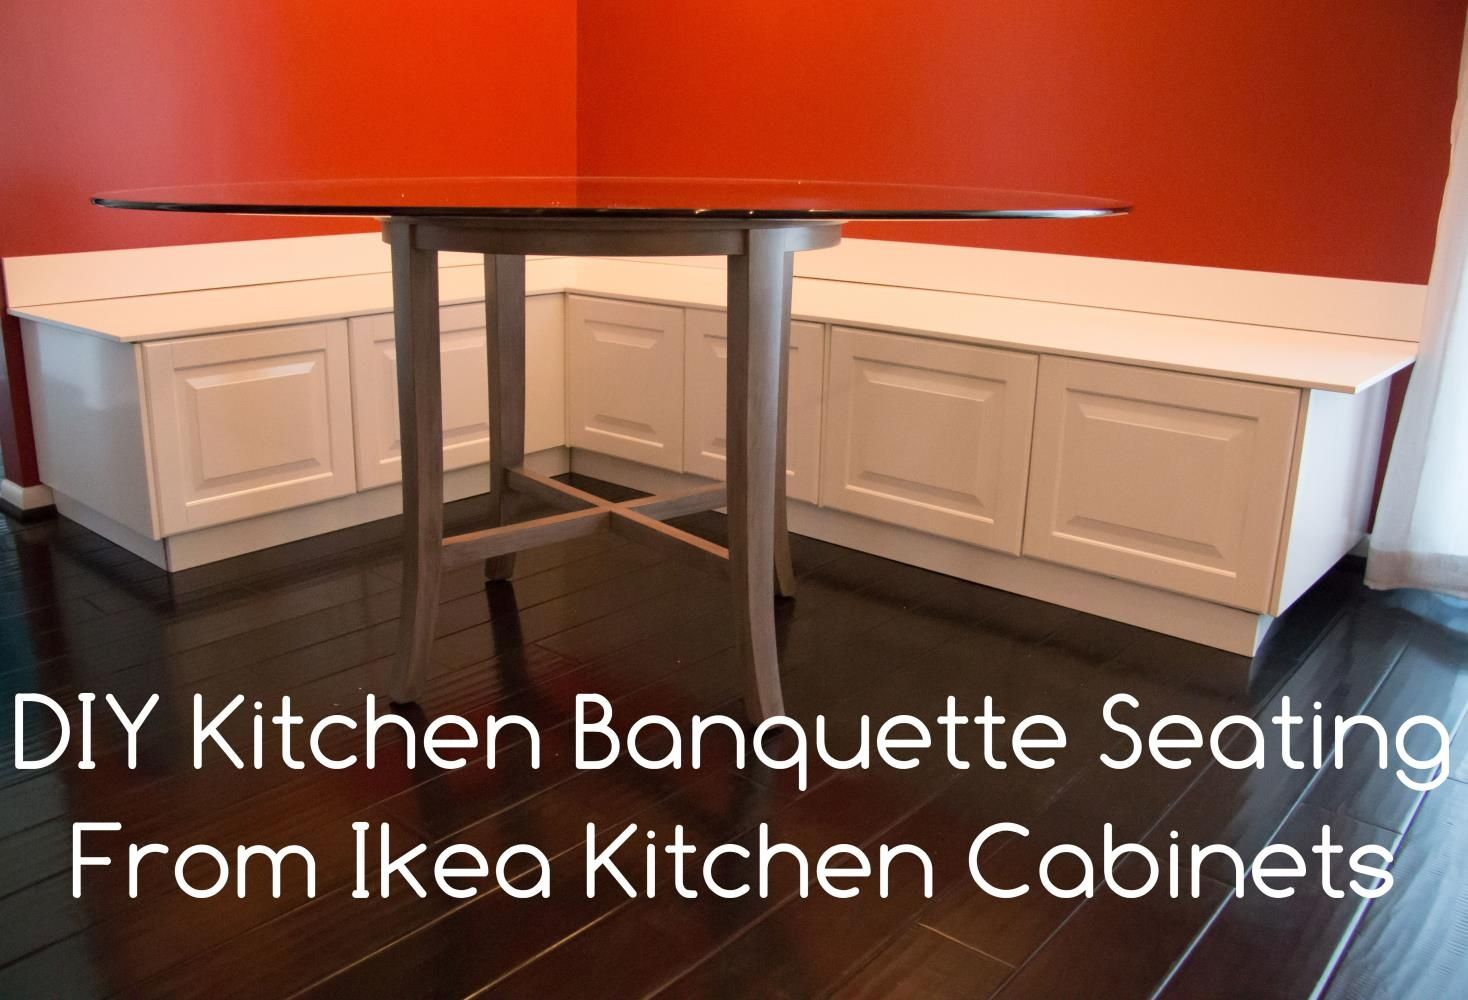 Diy Kitchen Banquette Bench Using Ikea Cabinets Ikea Hacks With Images Banquette Seating In Kitchen Bench Seating Kitchen Banquette Seating Diy